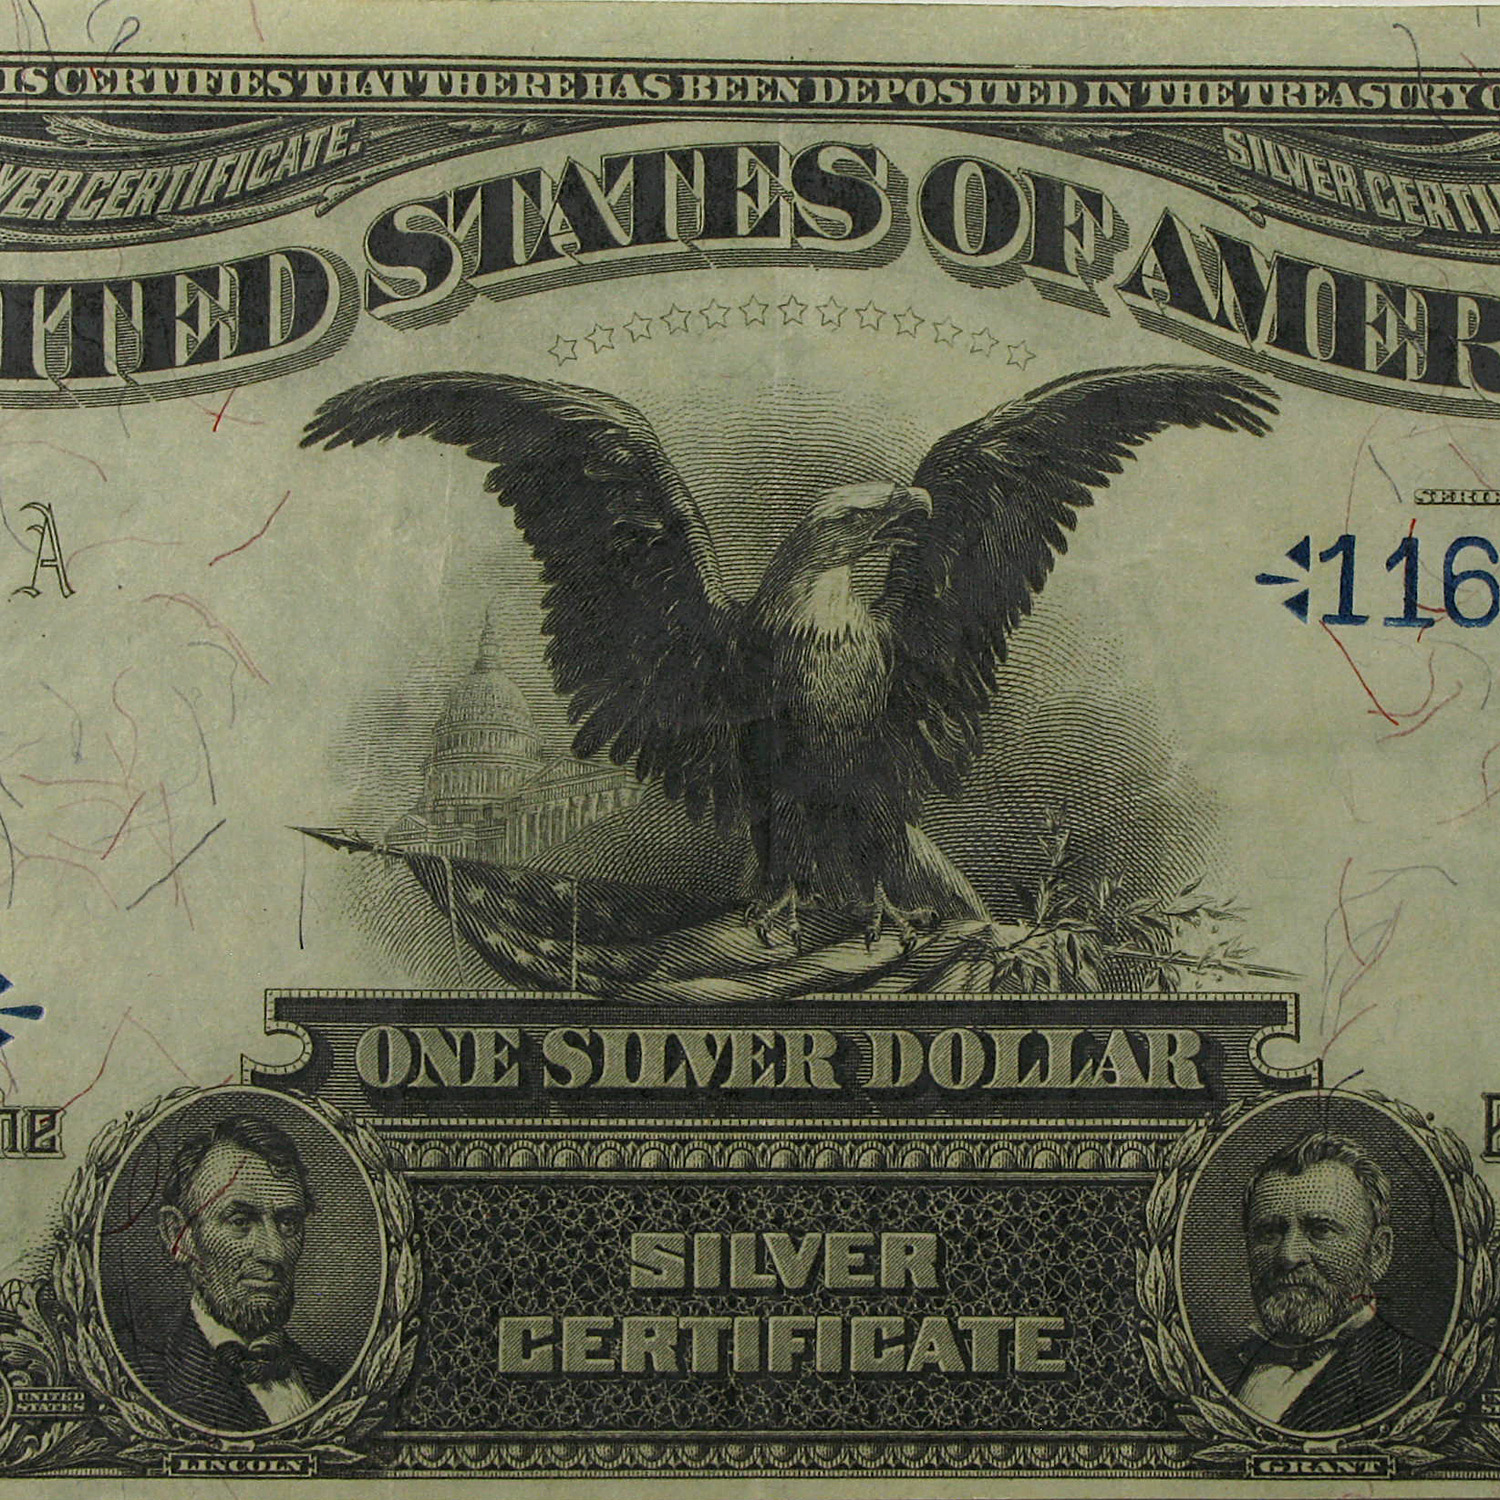 1899 $1.00 Silver Certificate Black Eagle (Very Fine +)